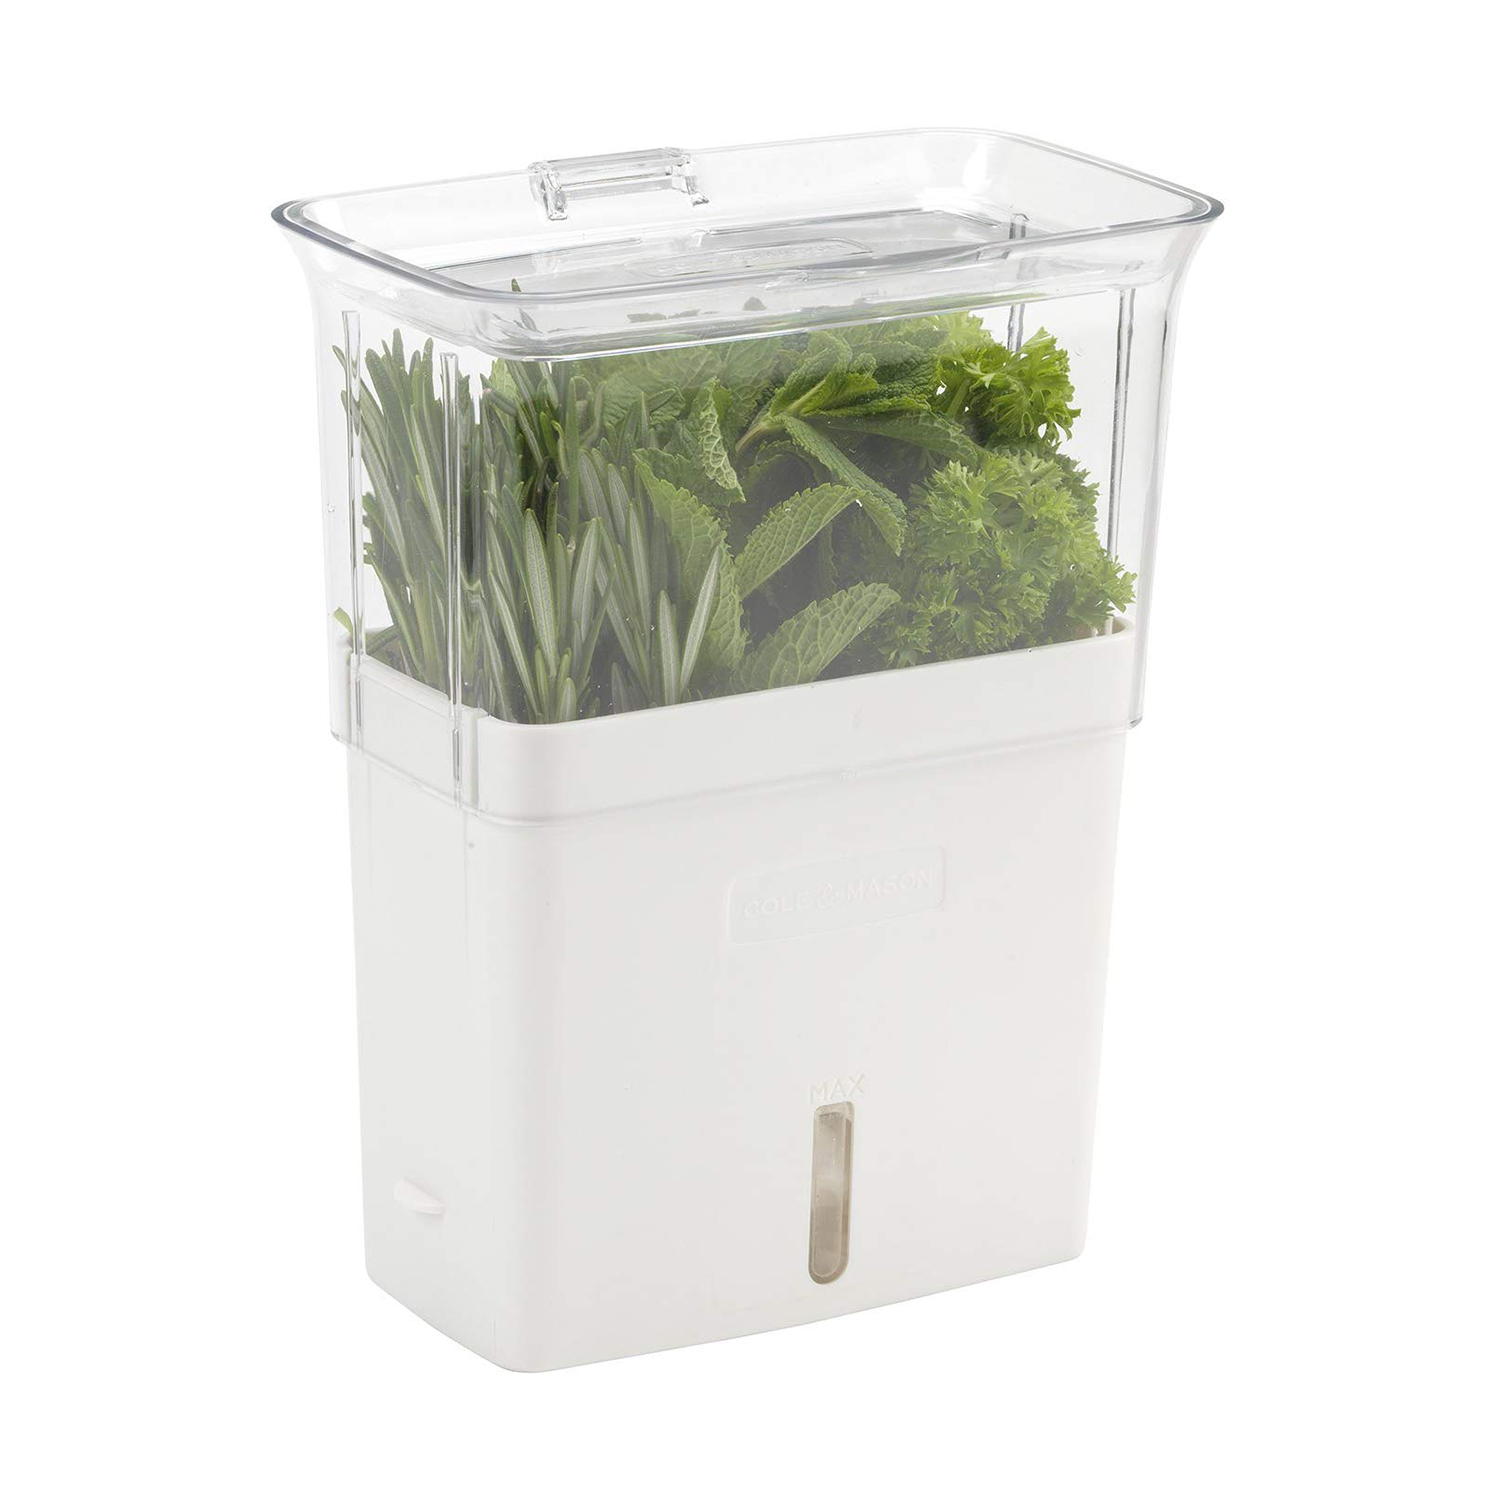 COLE & MASON Fresh Herb Keeper, Container